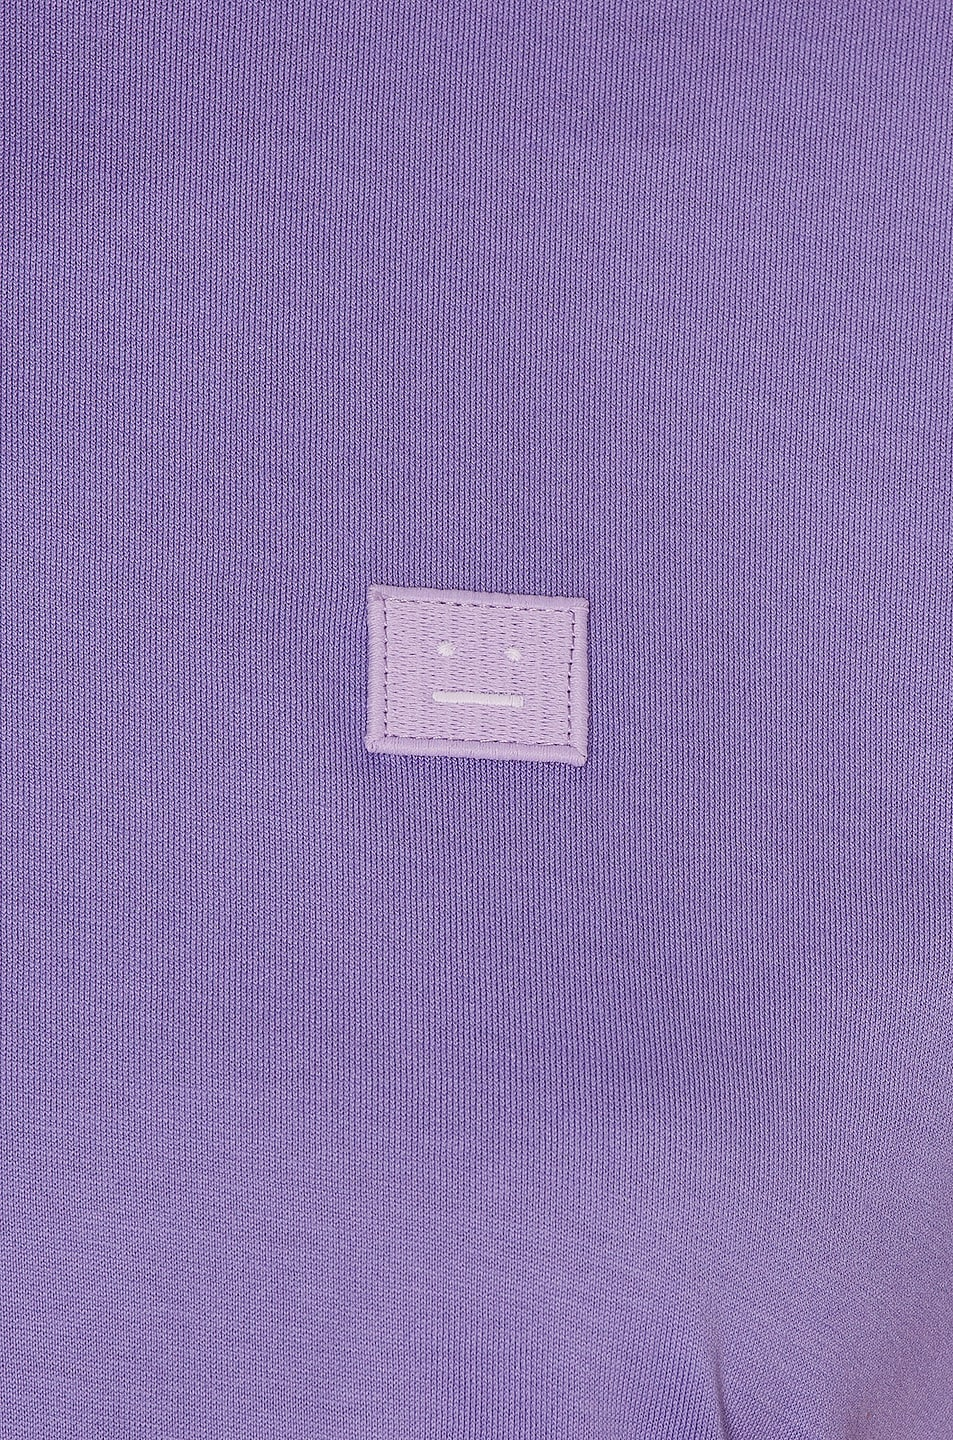 Image 5 of Acne Studios Face Tee in Lavender Purple